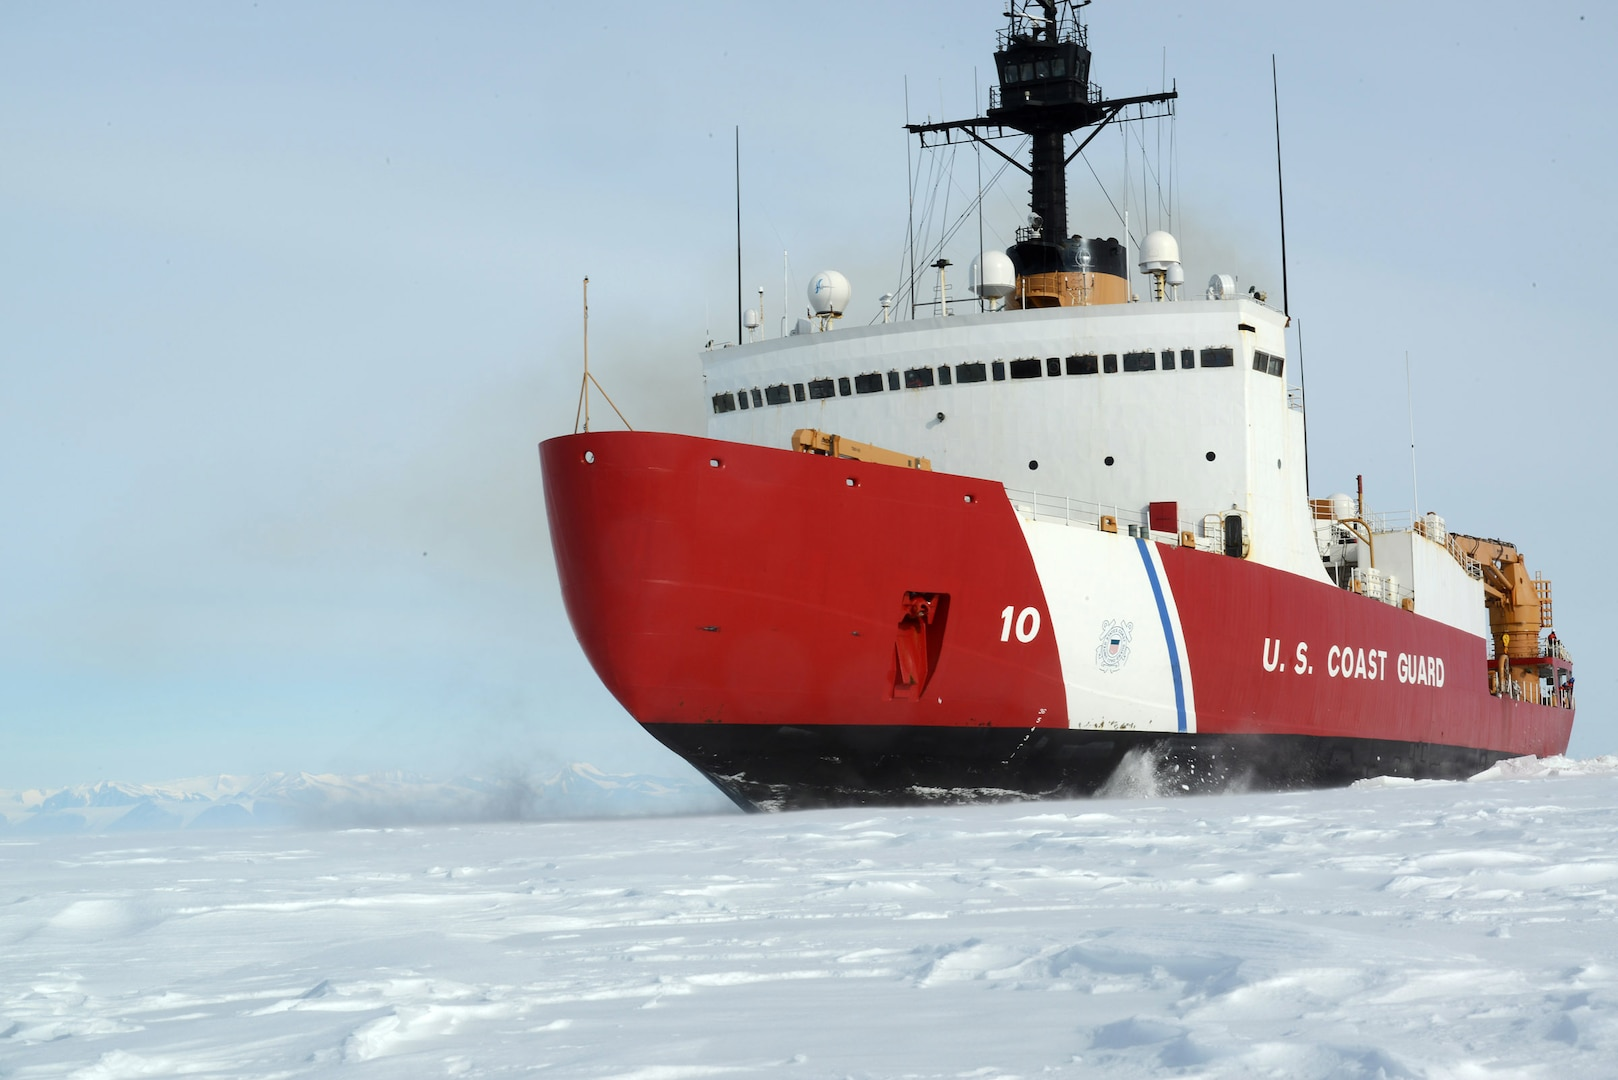 The Coast Guard Cutter Polar Star, with 75,000 horsepower and its 13,500-ton weight, is guided by its crew to break through Antarctic ice en route to the National Science Foundation's McMurdo Station, Jan. 15, 2017. The ship, which was designed more than 40 years ago, remains the world's most powerful non-nuclear icebreaker.